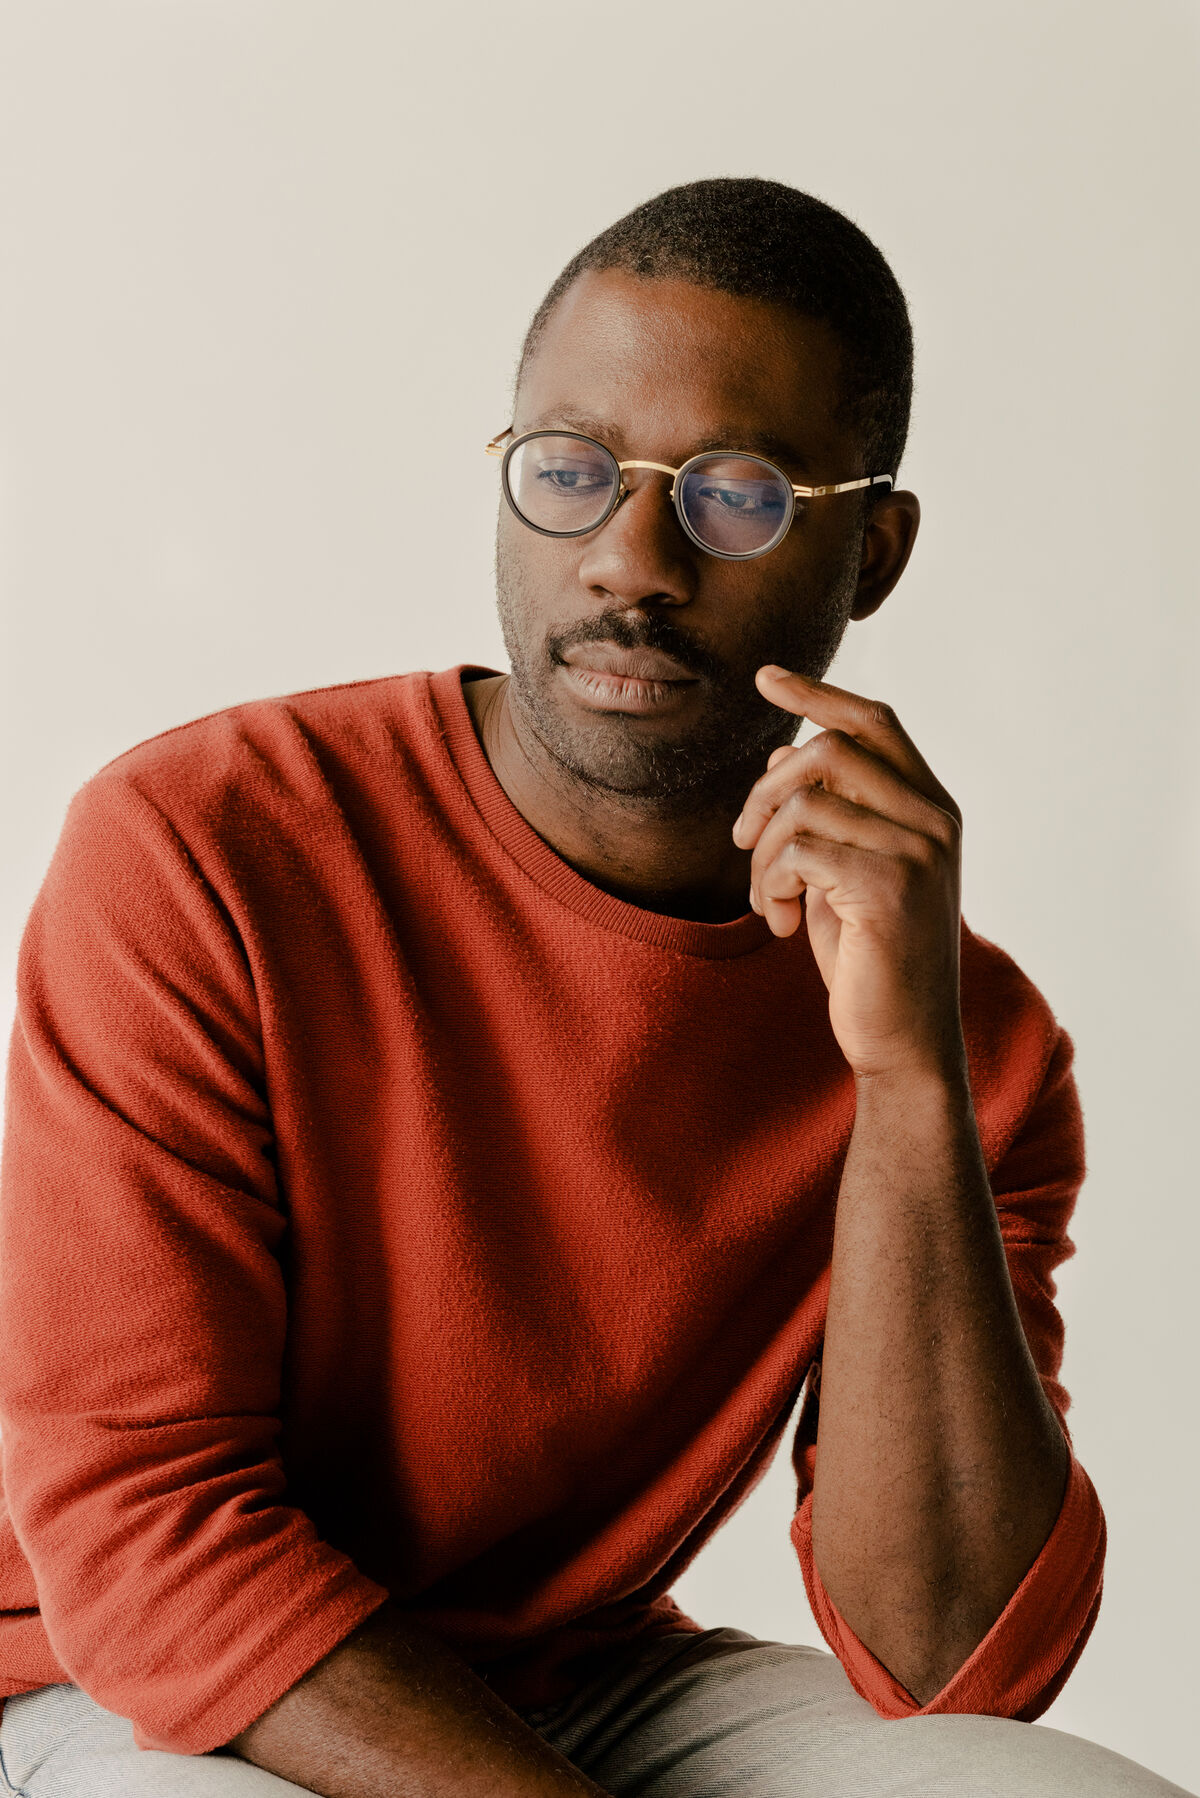 Paul Mpagi Sepuya by Daniel Dorsa for Artsy.